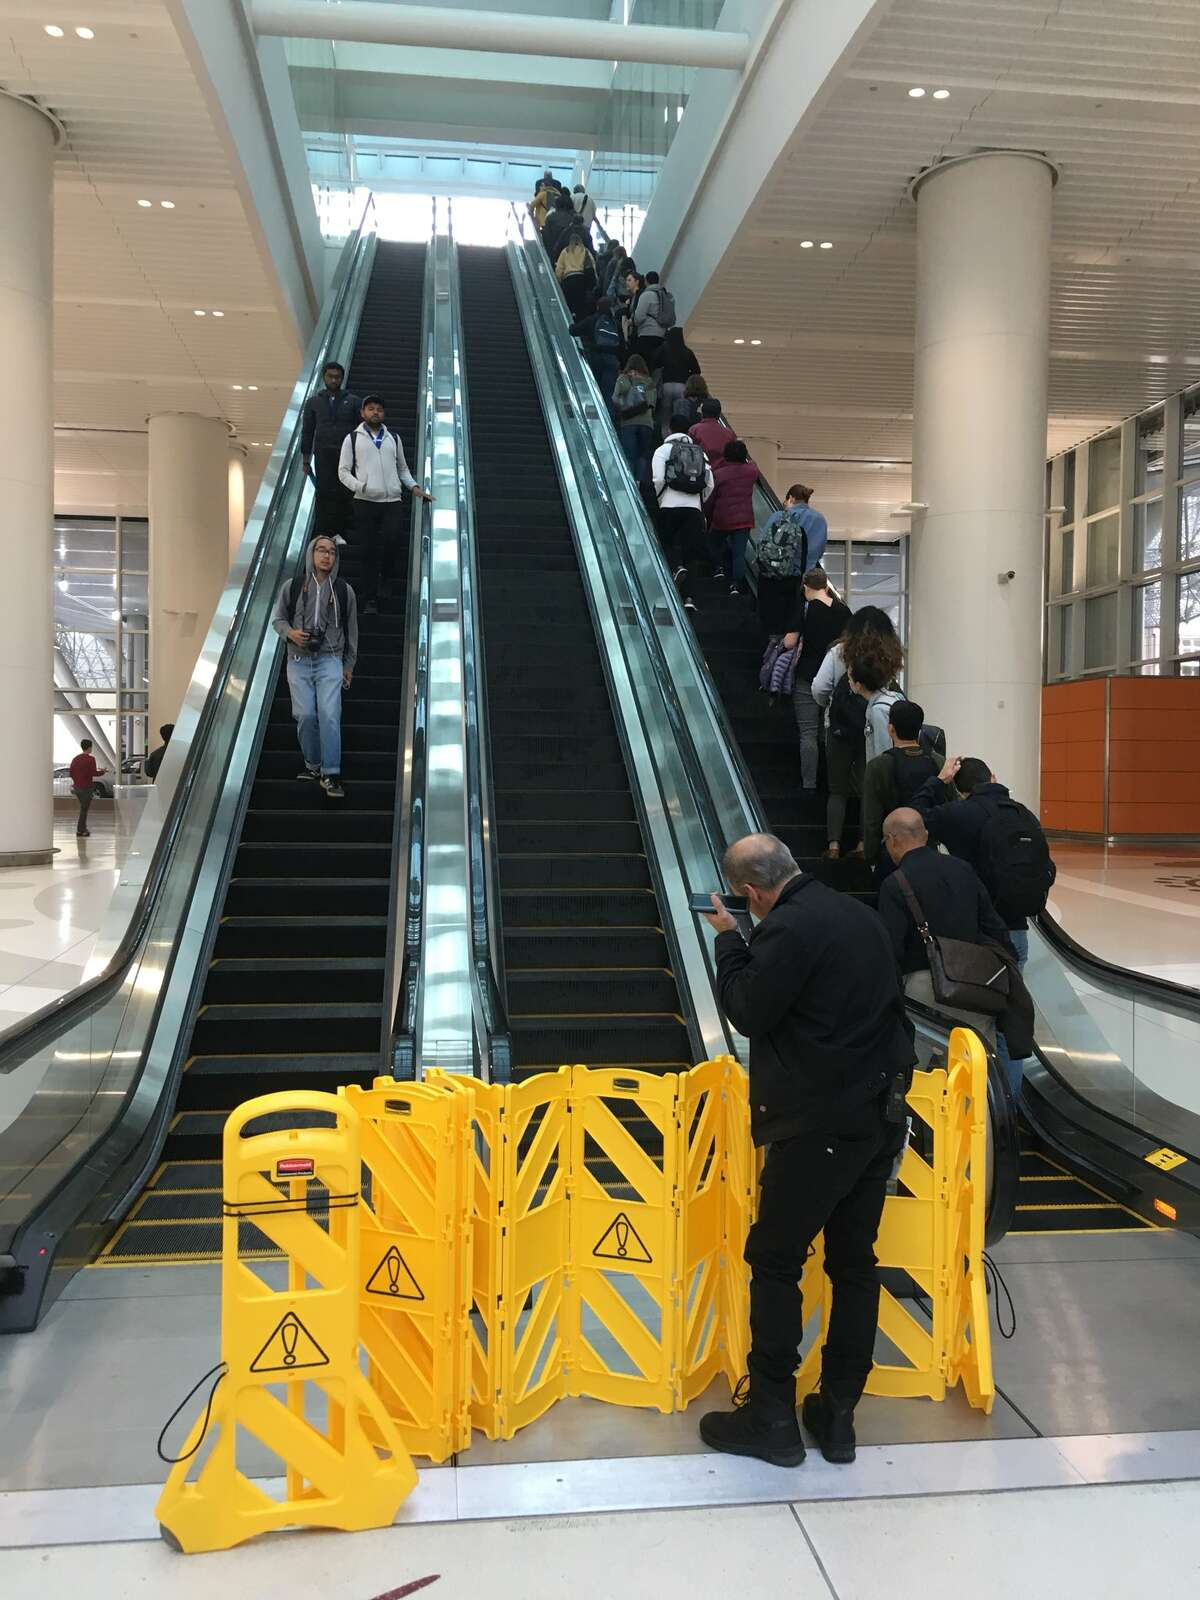 Twitter user @suldrew snapped a photo of an out-of-service escalator at the new Transbay Transit Center on Tuesday, Aug. 14, 2018.